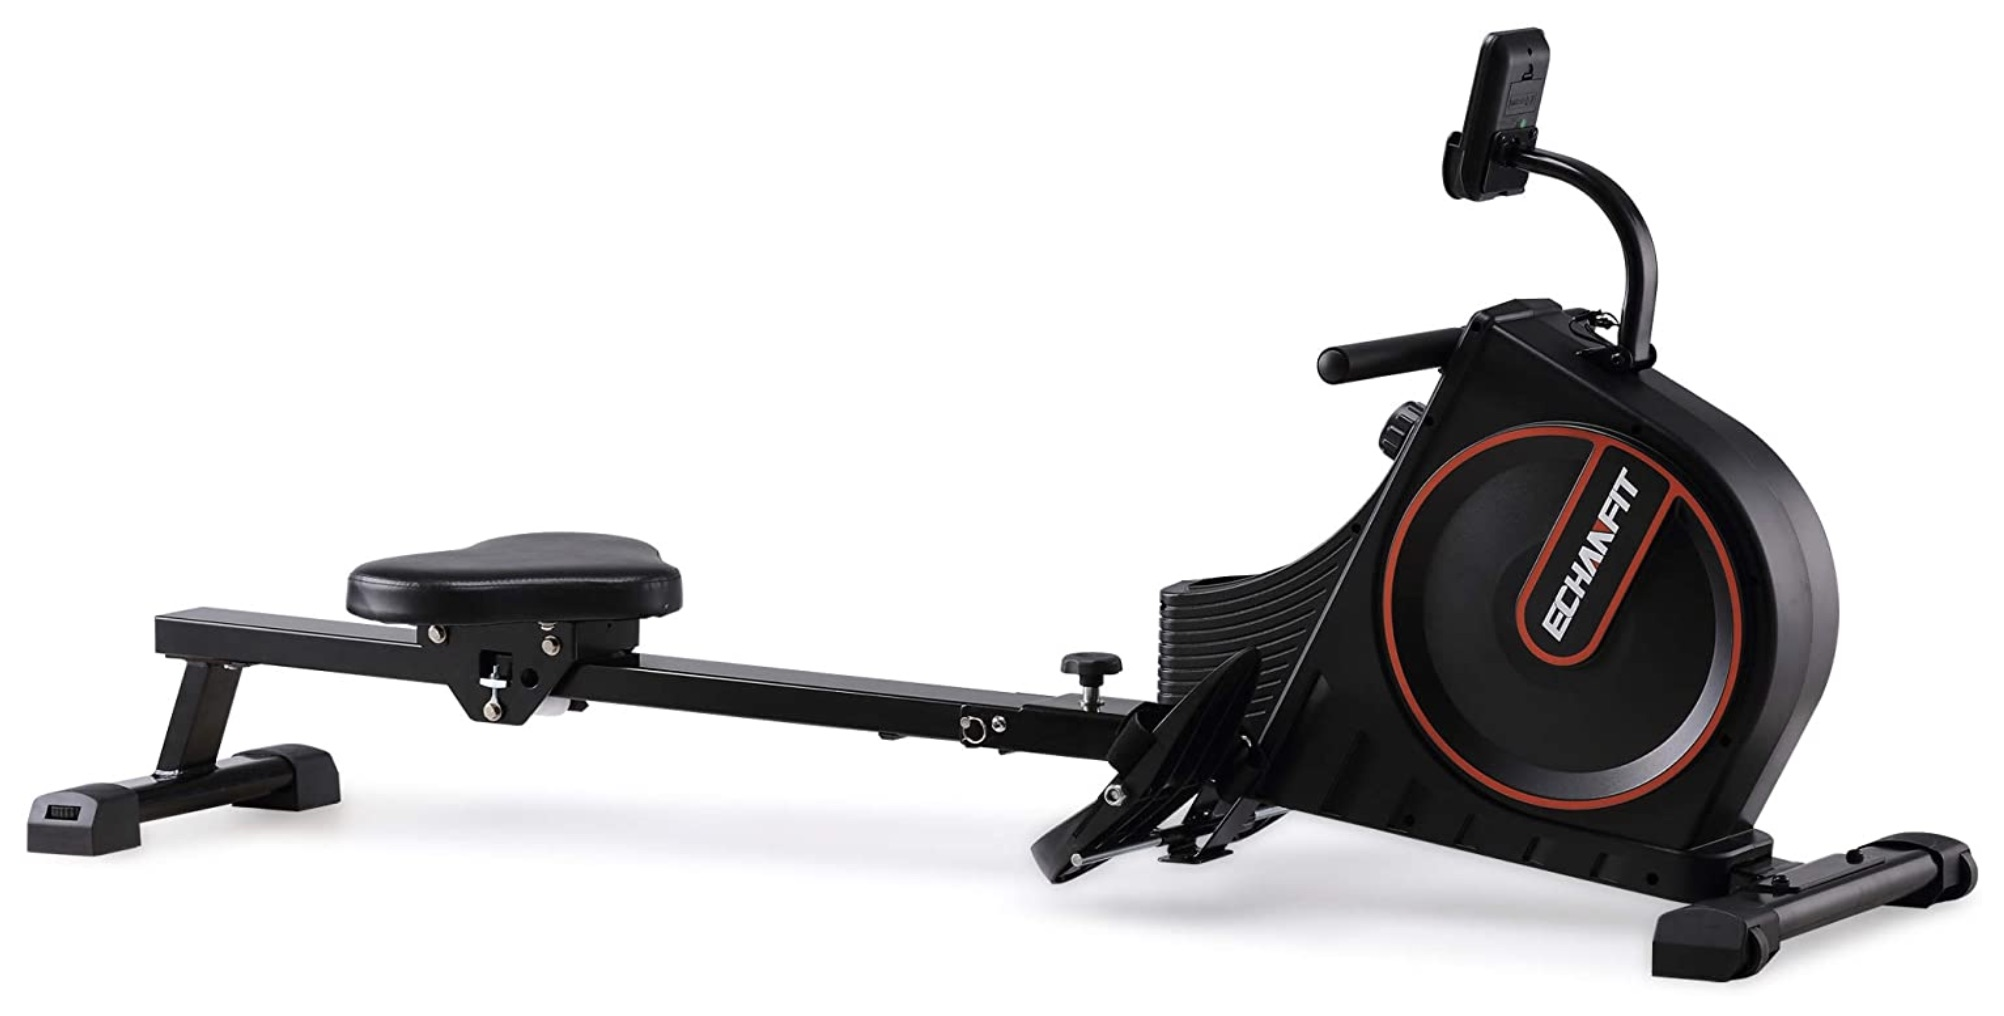 Echanfit Rower Review